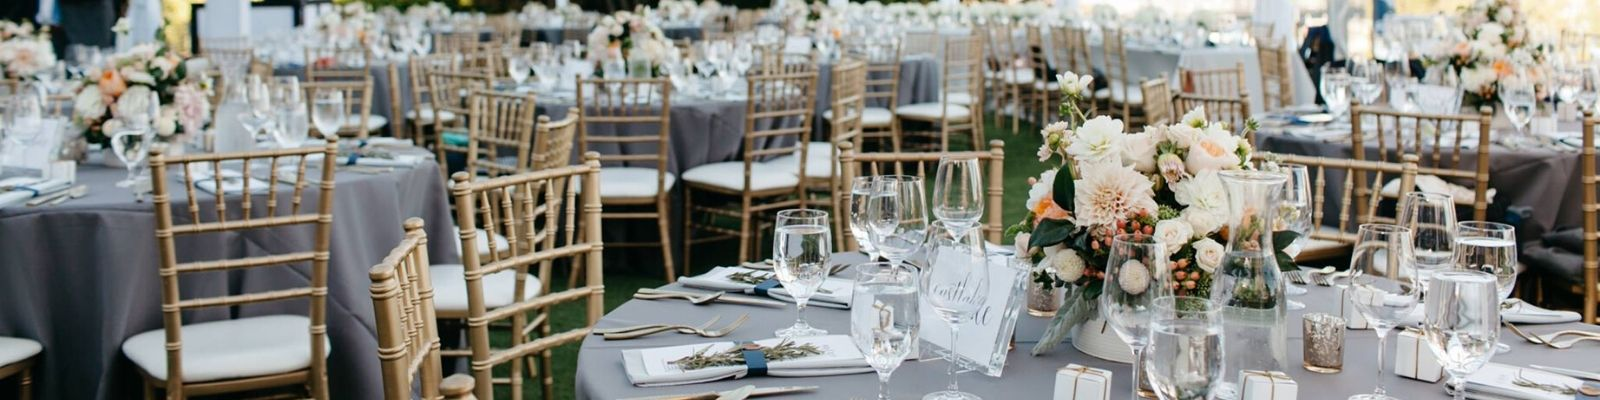 Special event rentals in the Greater Puget Sound area